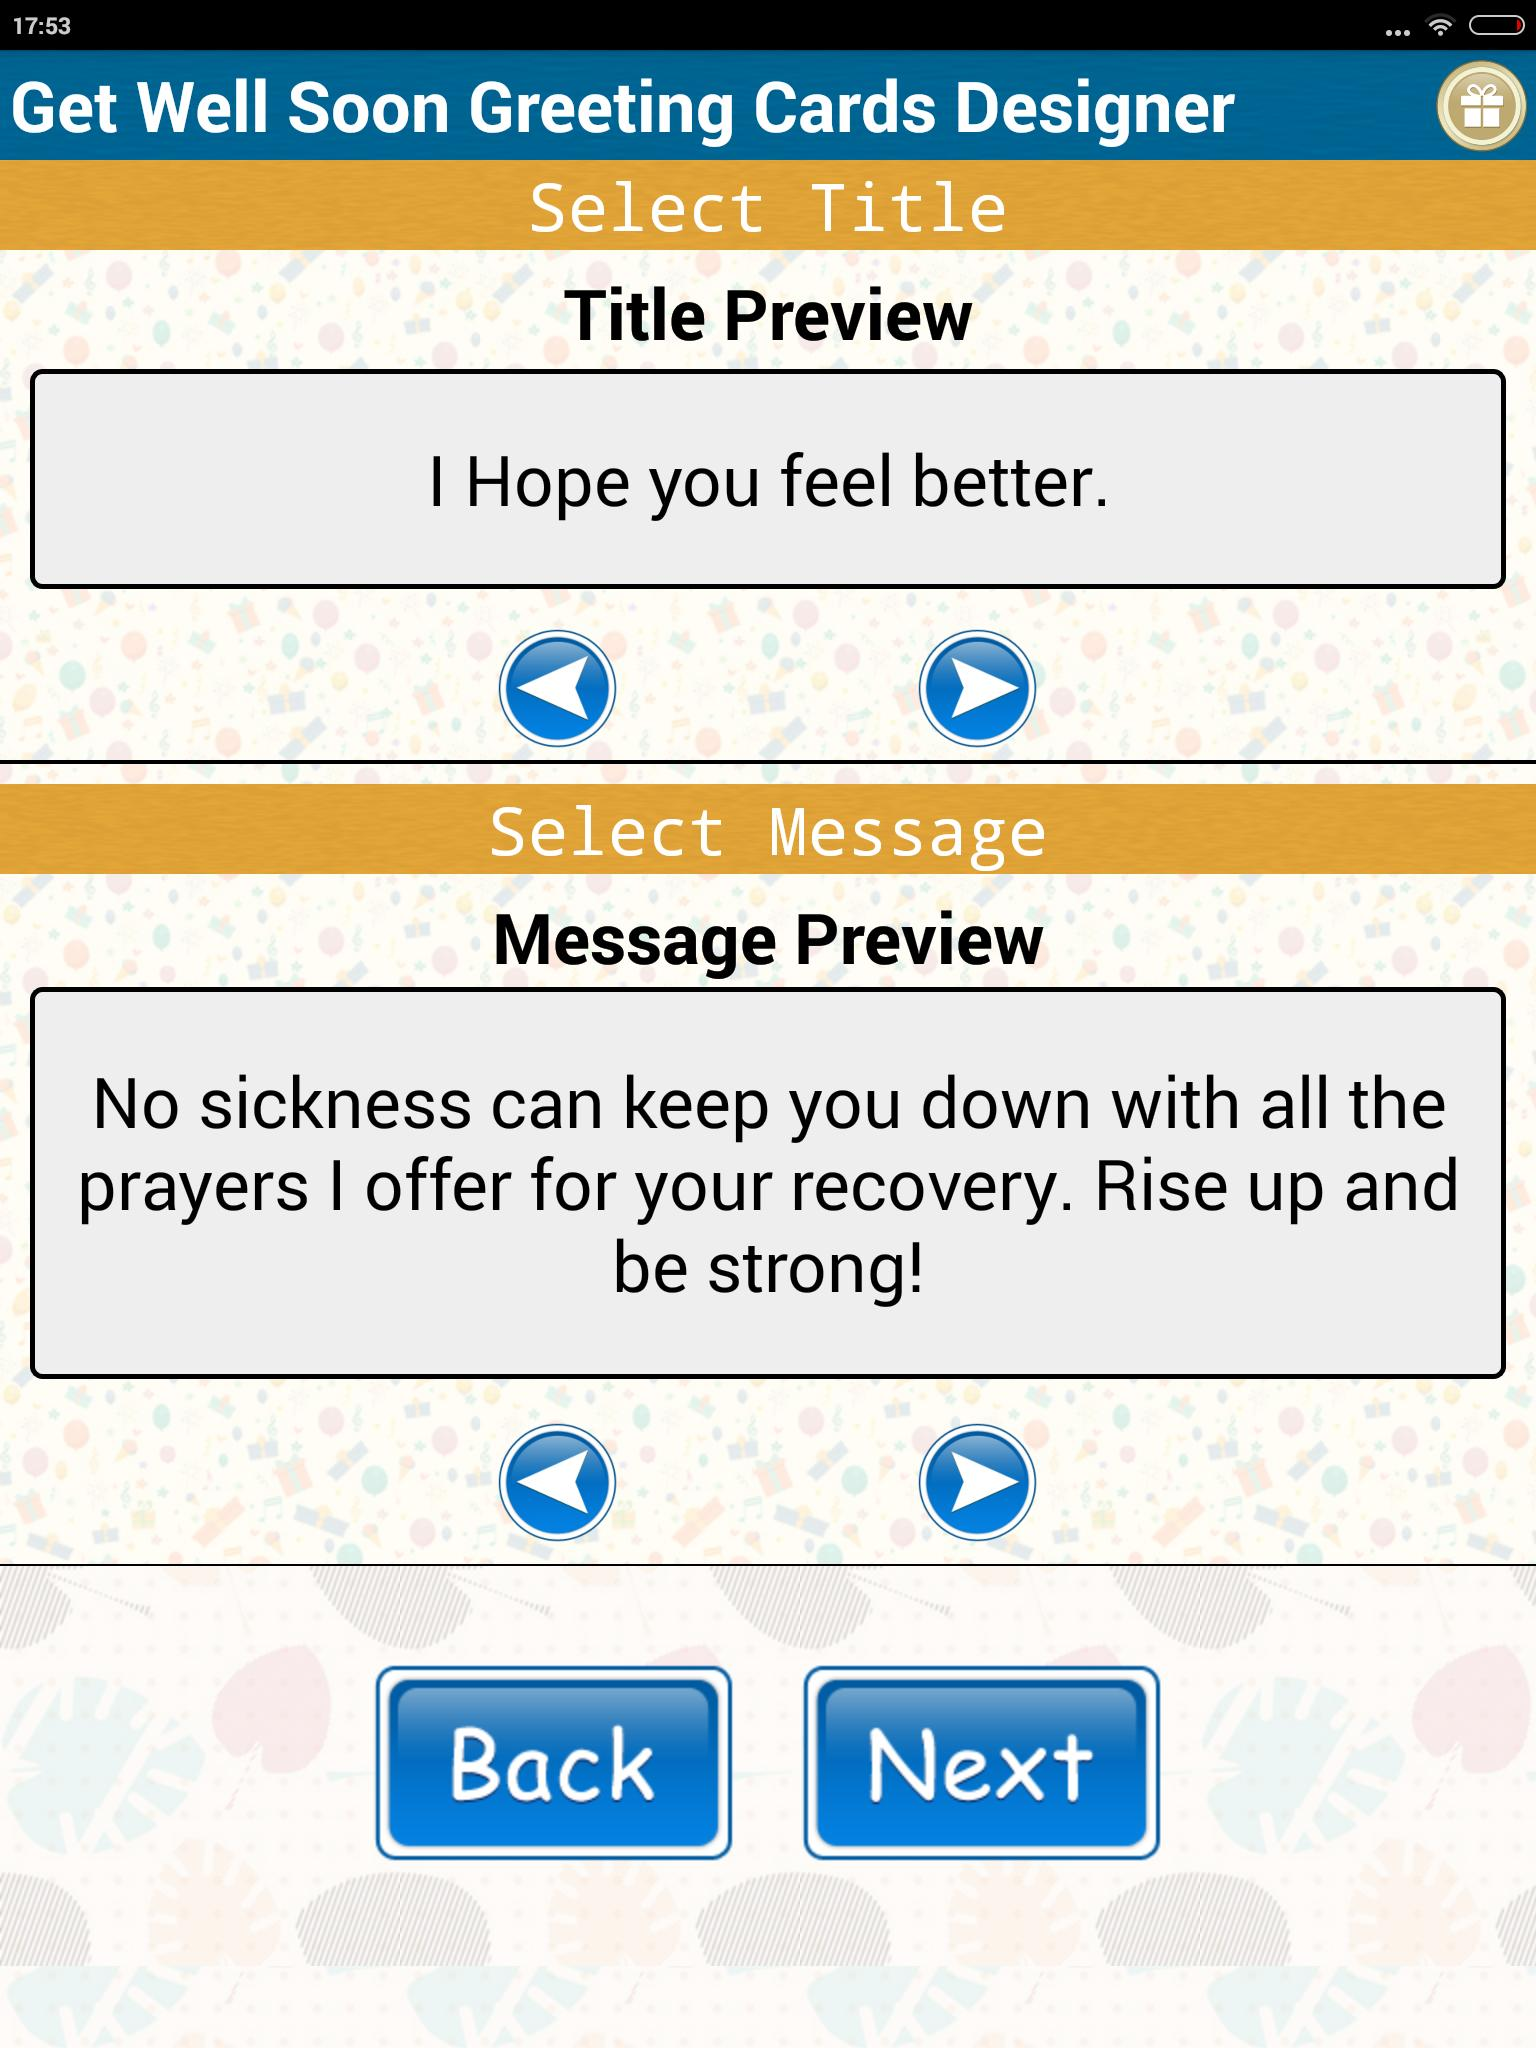 Get Well Soon Cards Maker Free for Android - APK Download